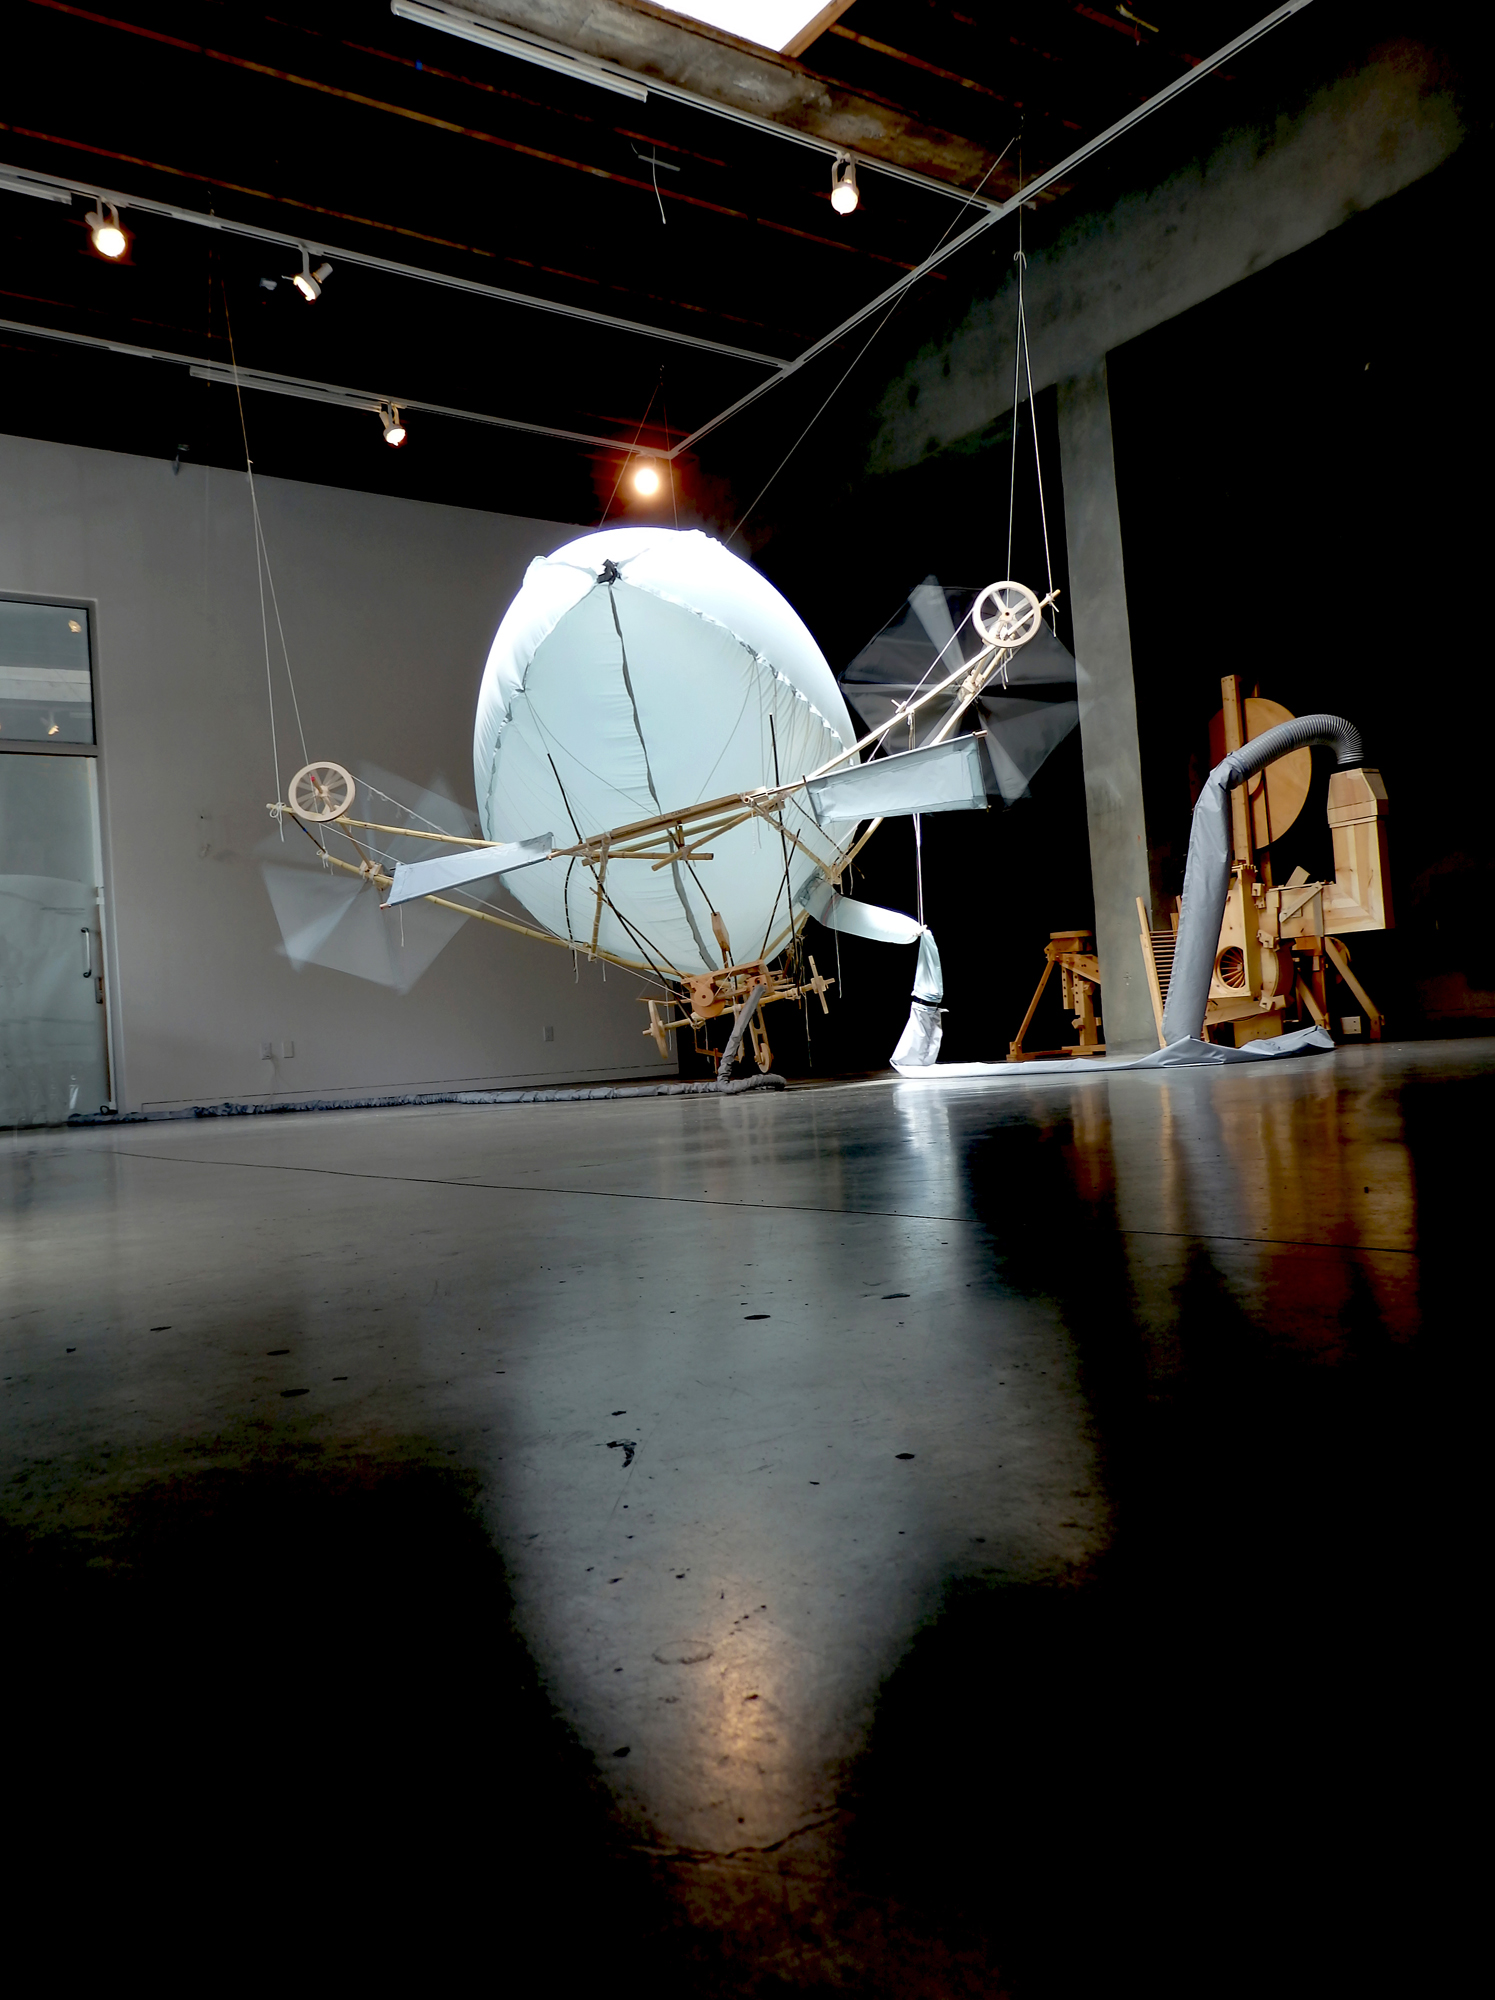 Bernie Lubell, Le Canard, 2015, Southern Exposure Gallery, SF, CA Bamboo, coated rip stop nylon, pine, maple & maple plywood, cotton twine, nylon line, music wire and air, 15(h) x 32 x 32 feet